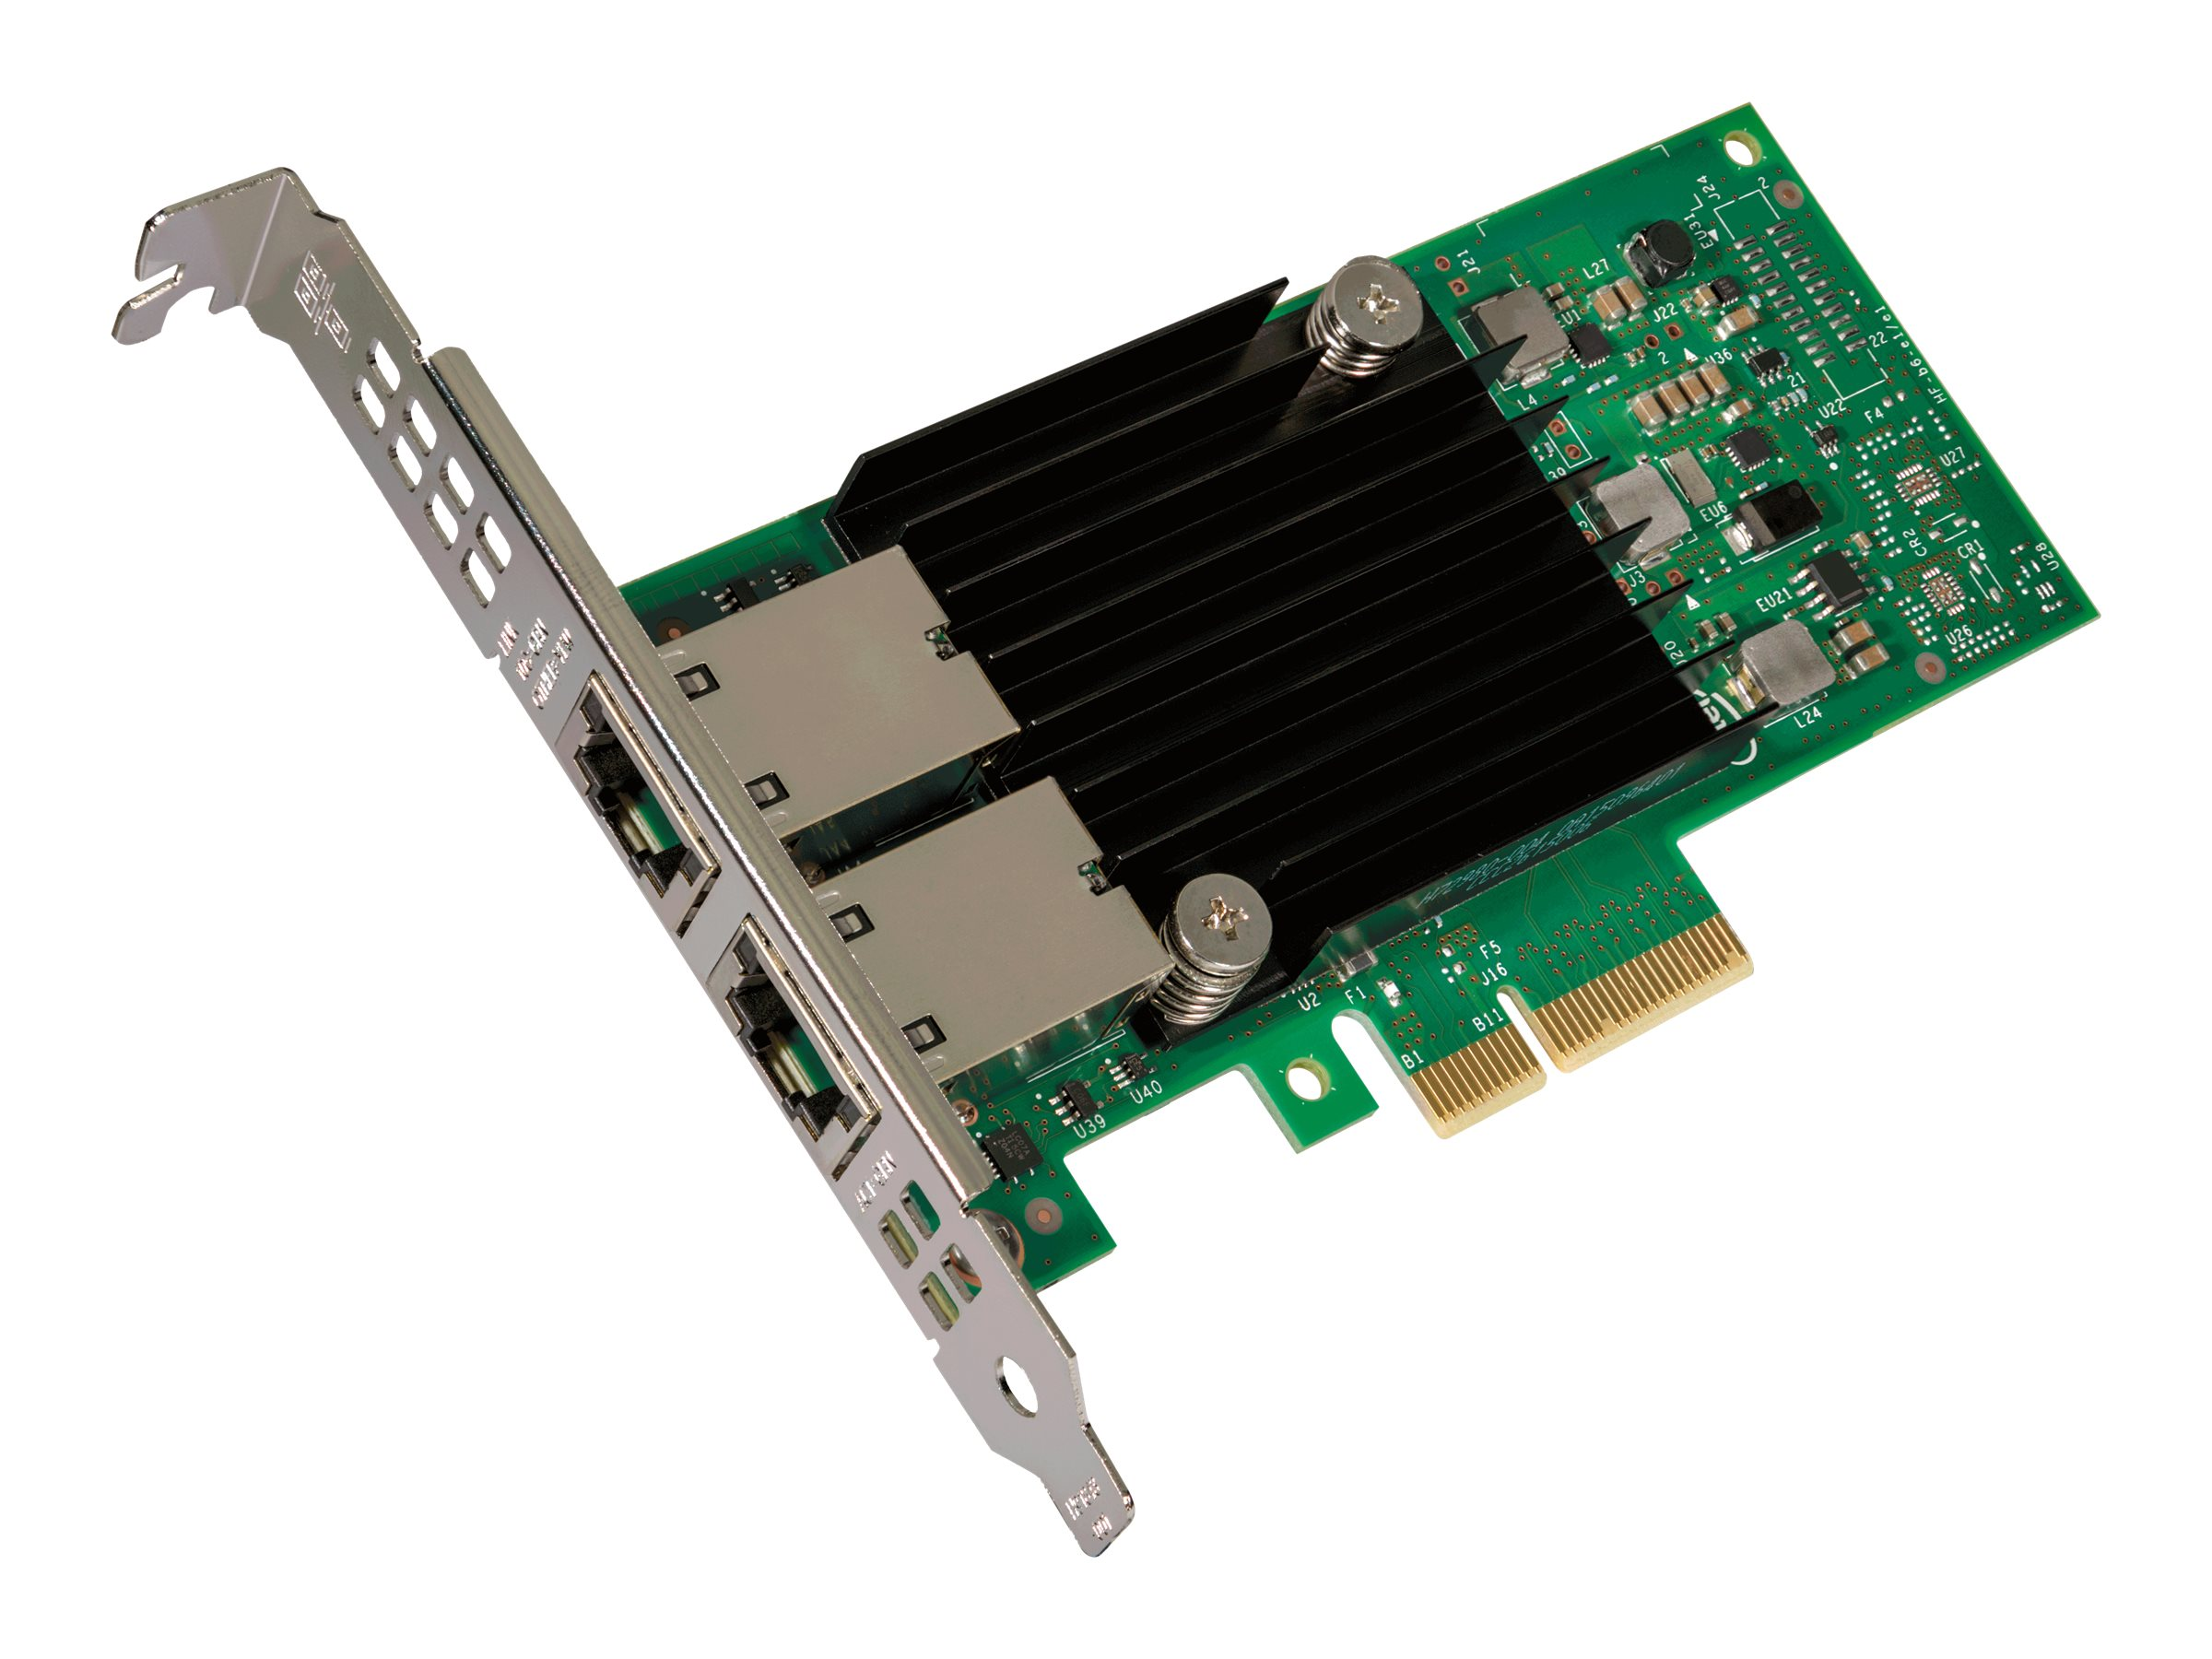 Intel Ethernet Converged Network Adapter X550-T2 - Netzwerkadapter - PCIe 3.0 x4 Low-Profile - 10Gb Ethernet x 2